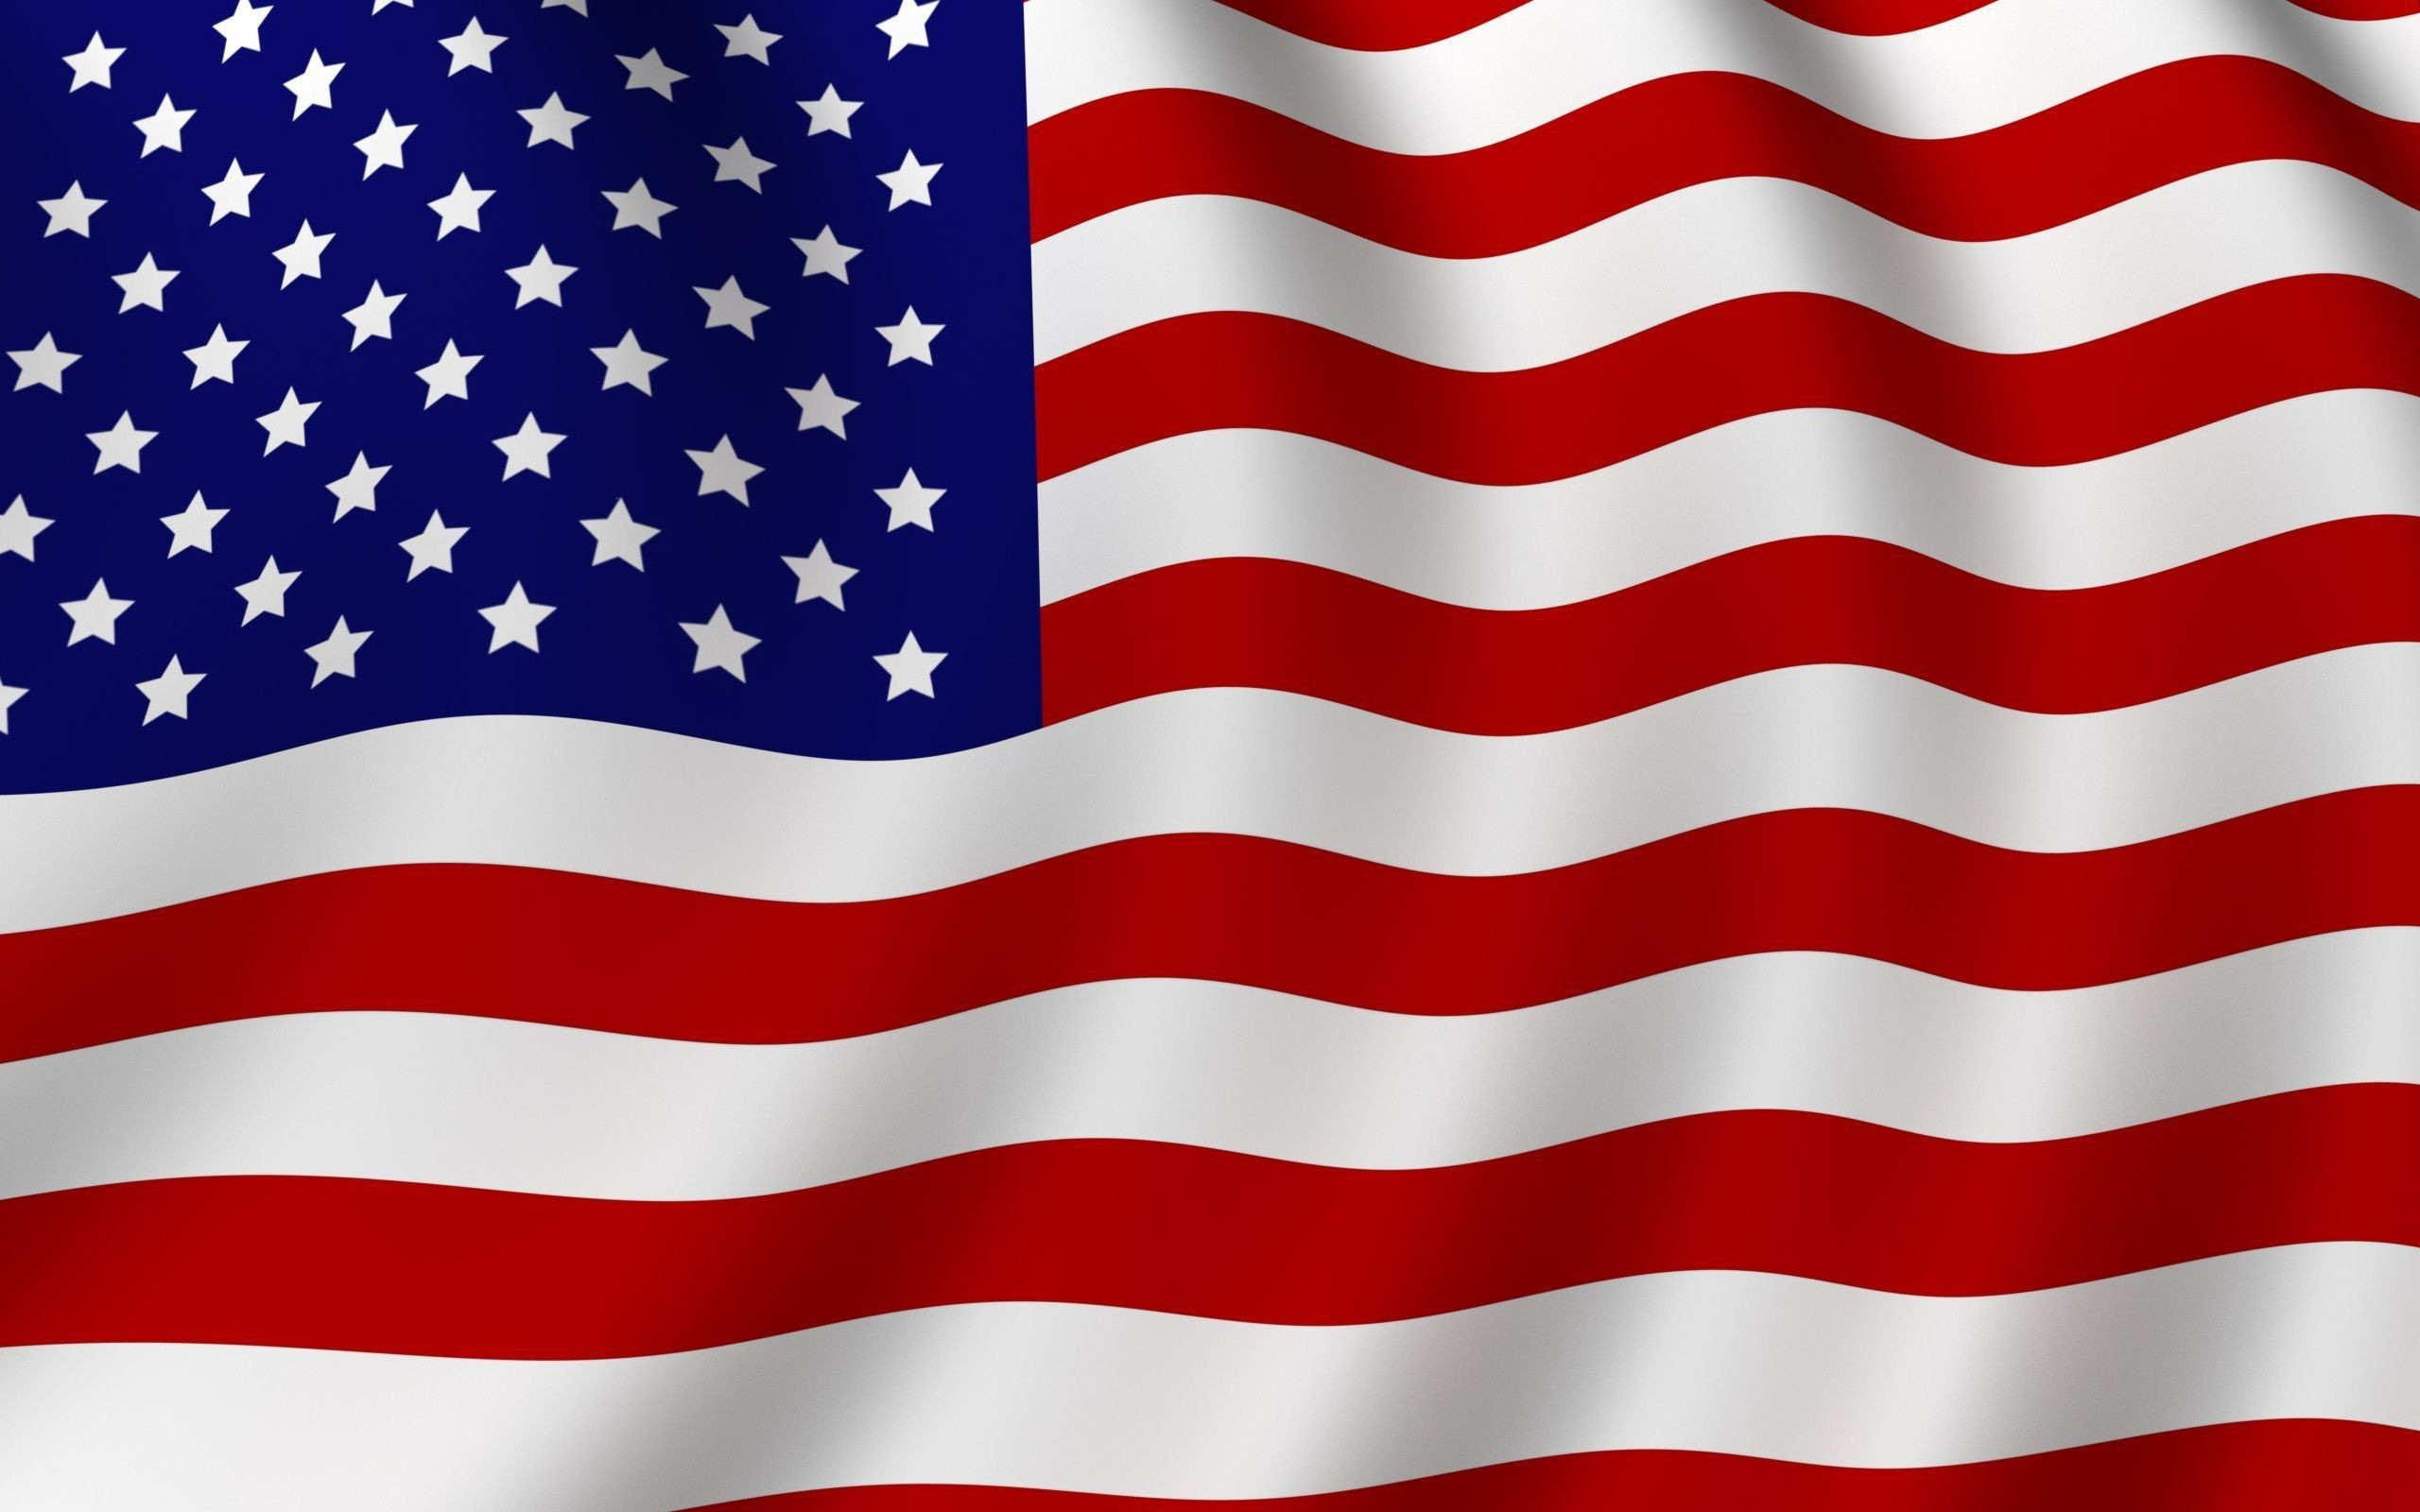 Hd American Flag Wallpapers  69  Images